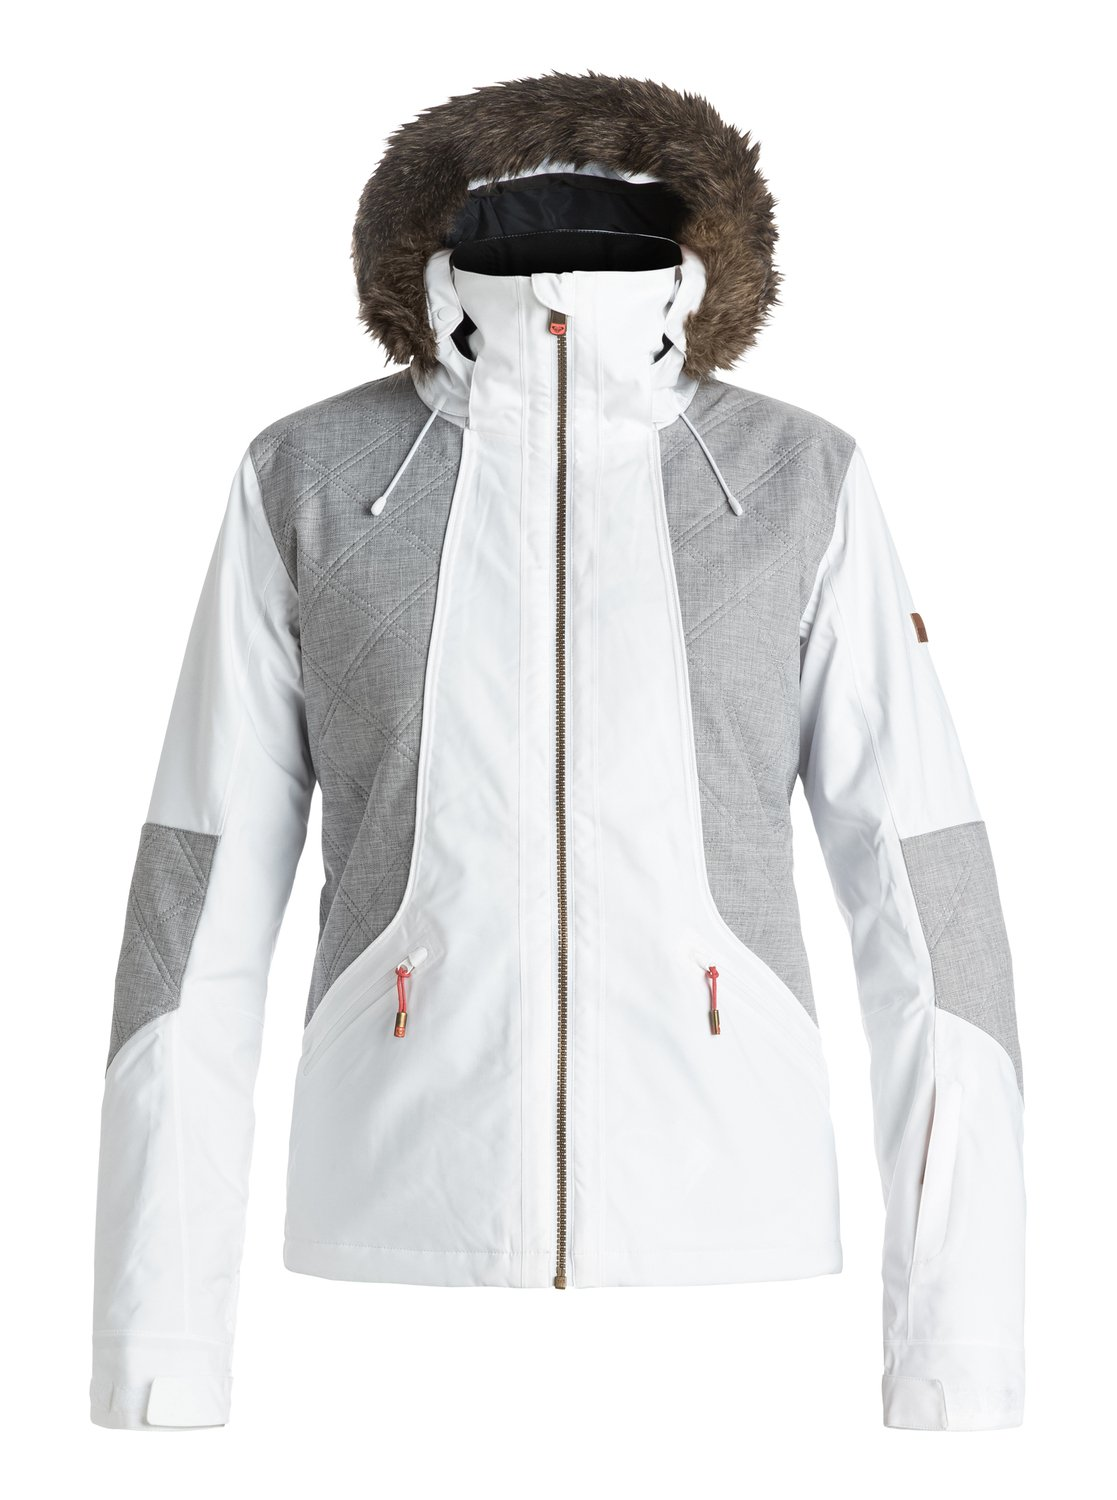 Сноубордическая куртка AtmosphereThe Atmosphere snow jackets 10K ROXY DryFlight® technology waterproofing provides durable waterproof and breathable protection and comfort in wintry conditions. The slim fits sleek lines and modern styling offer form-fitting coverage that's sporty yet streamlined while 3M™ Thinsulate™ Type M ensures powerful bulk-free warmth.<br>